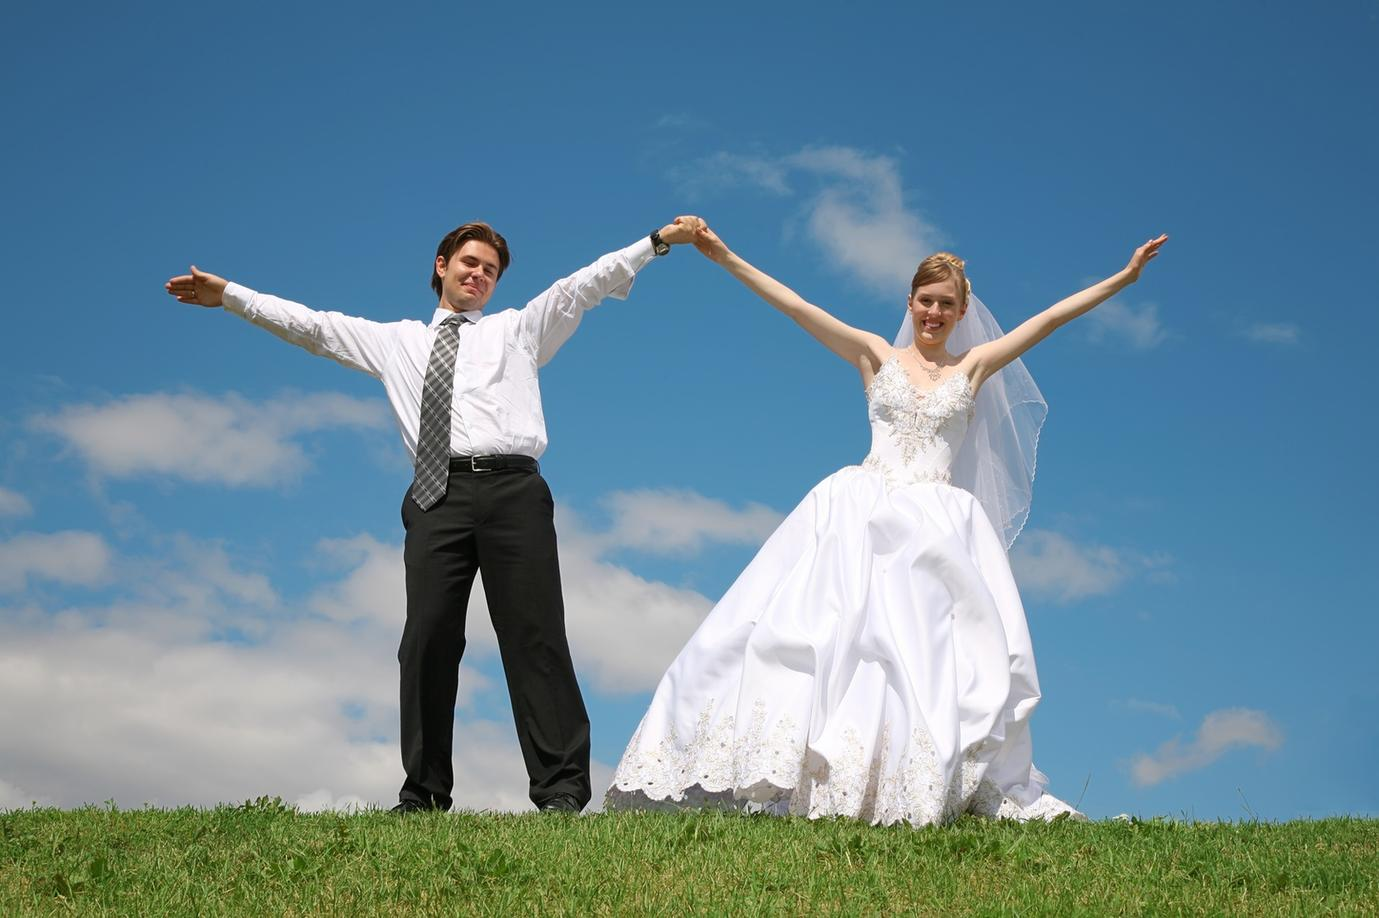 Bride and Groom on their wedding day. Groom is wearing a suit, Brides is wearing a beautiful white wedding dress.